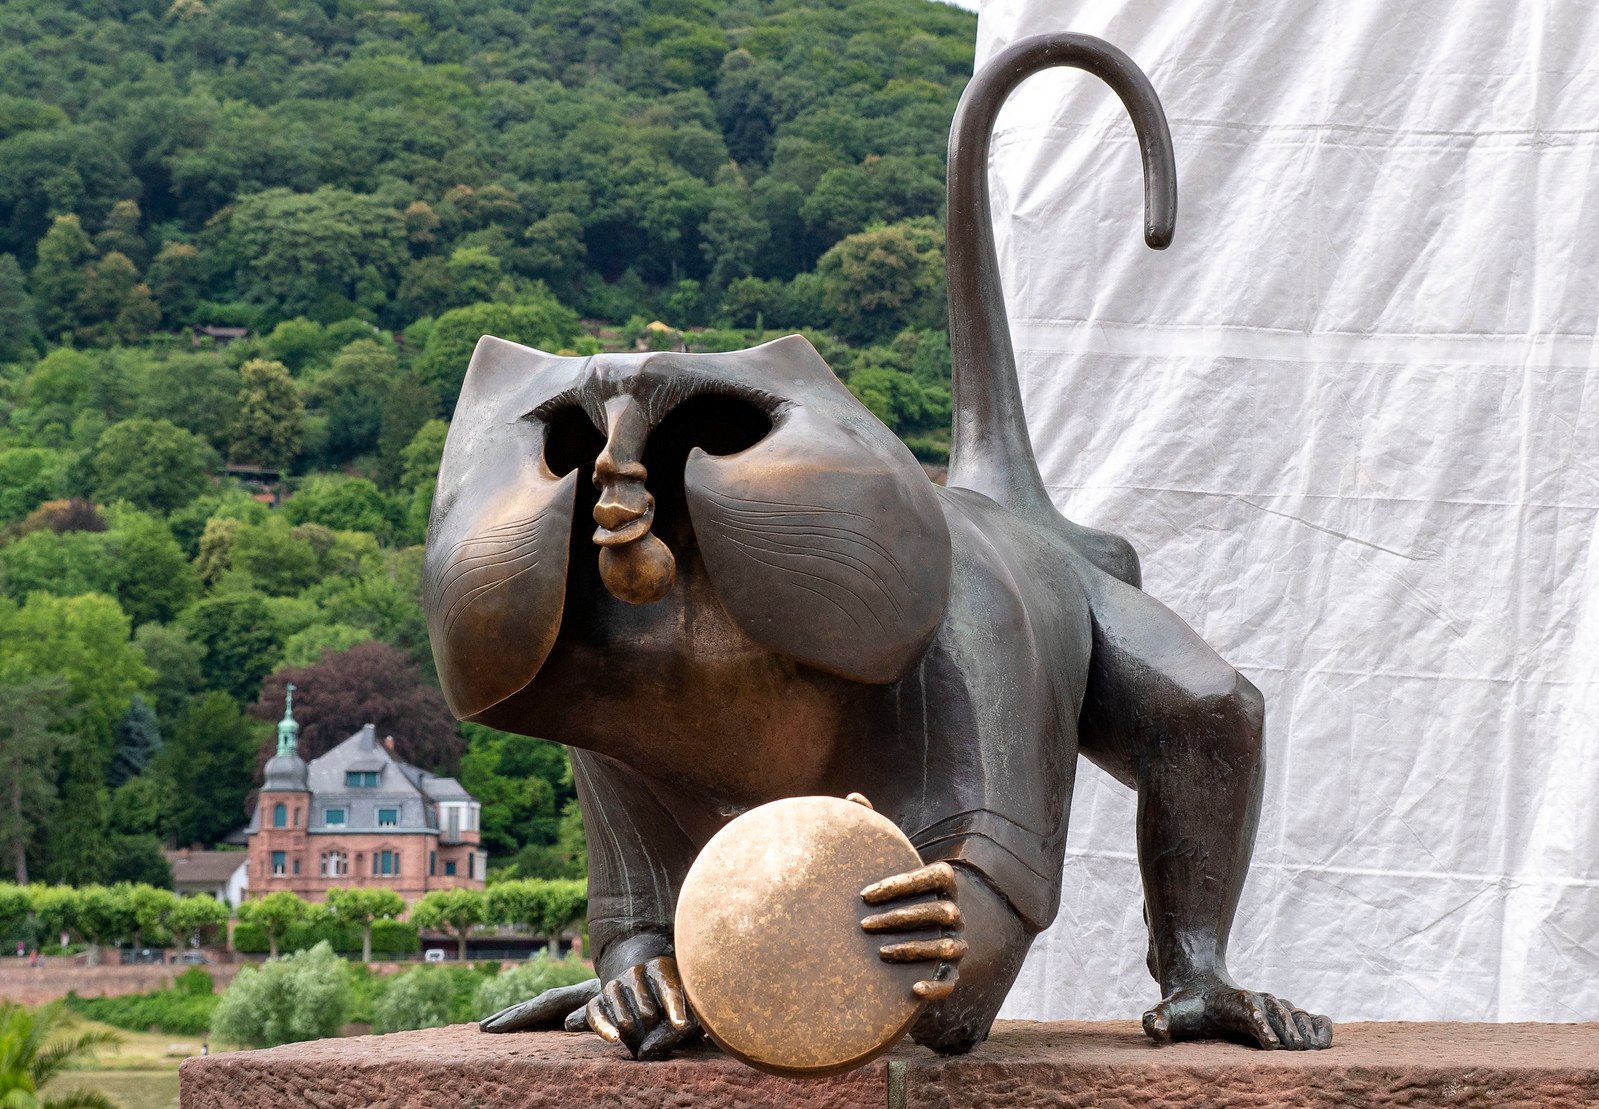 Spectacular Things to Do in Heidelberg Germany - Old Bridge monkey